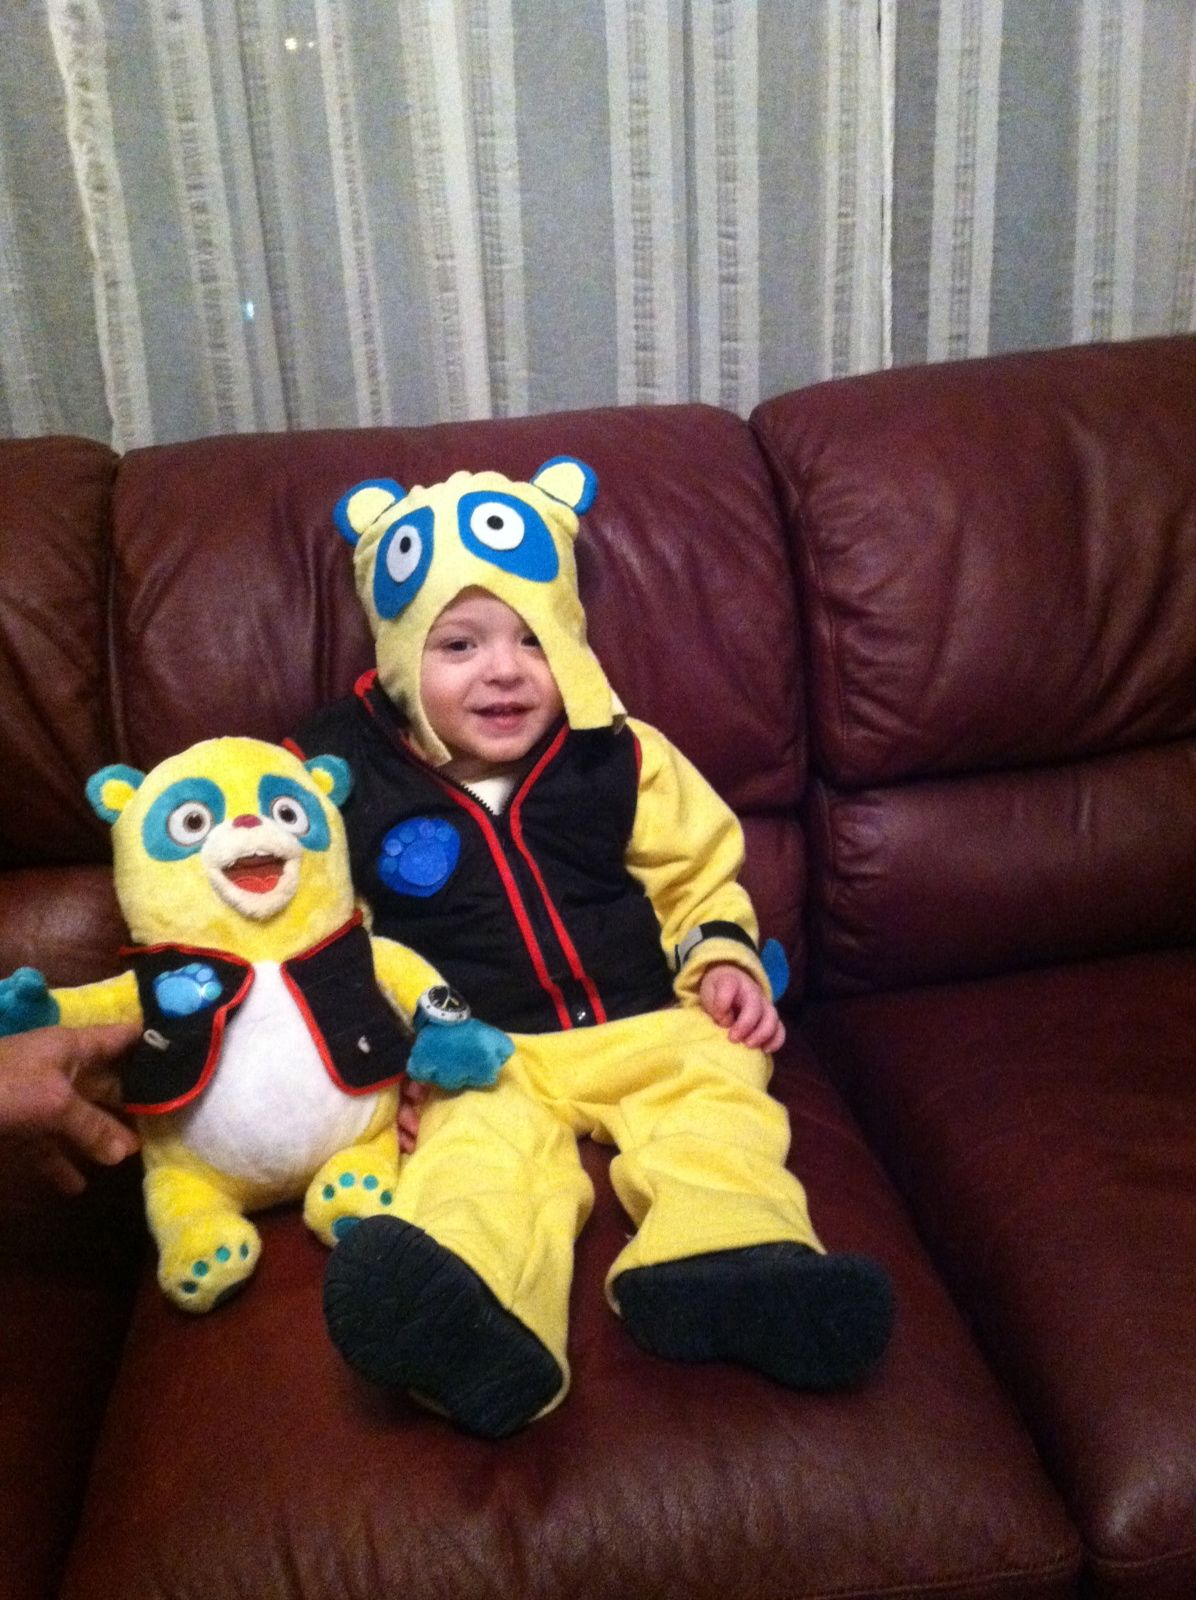 Special Agent Oso - DIY  sc 1 st  Pinterest & Special Agent Oso - DIY | Ideas I love | Pinterest | Special agent ...